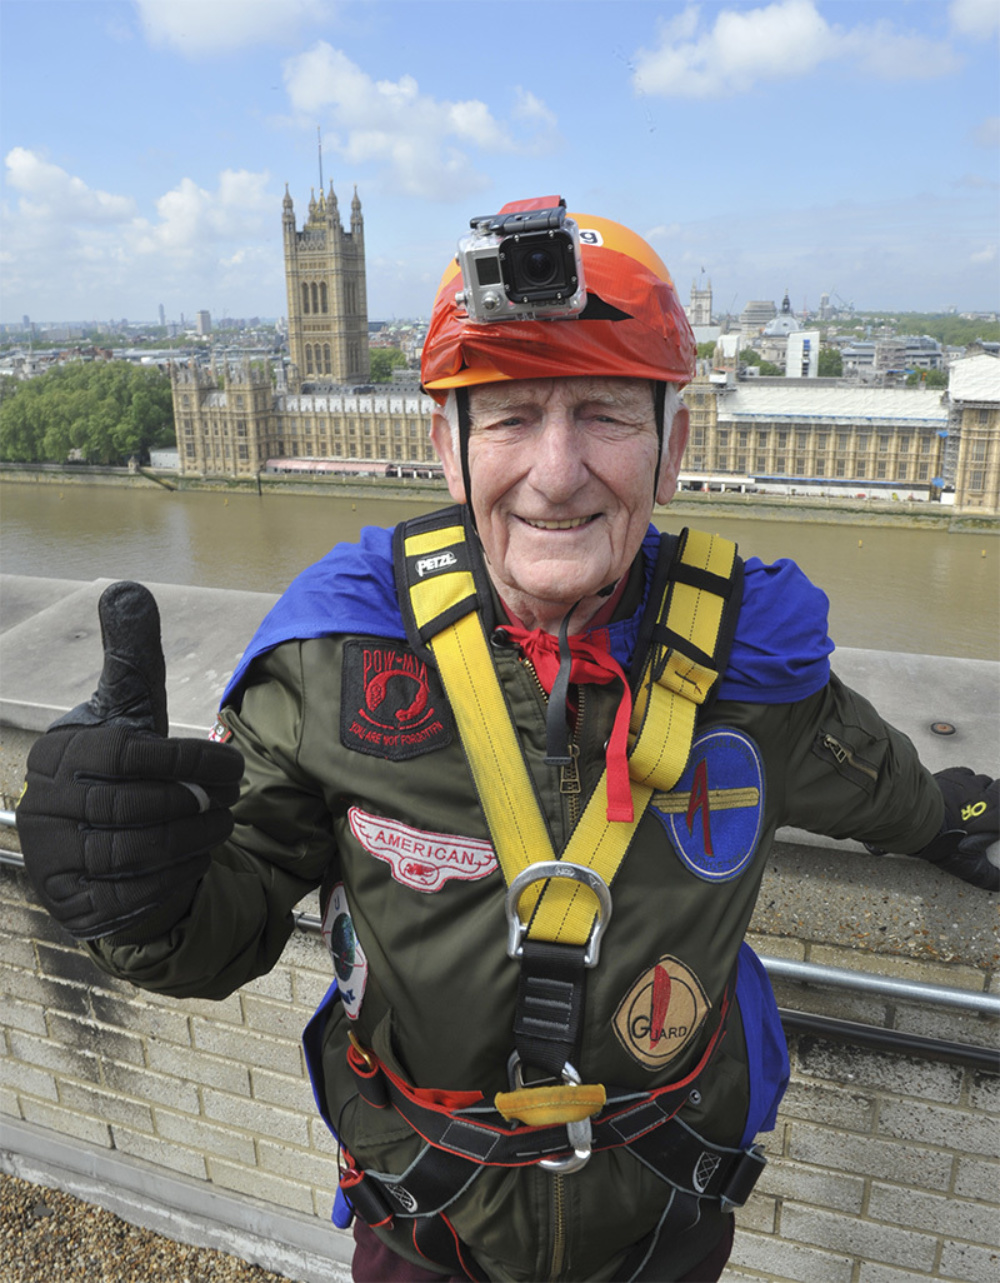 A man on the roof of a 16-story building in daylight, dressed in abseil gear, over looking the Thames and Big Ben